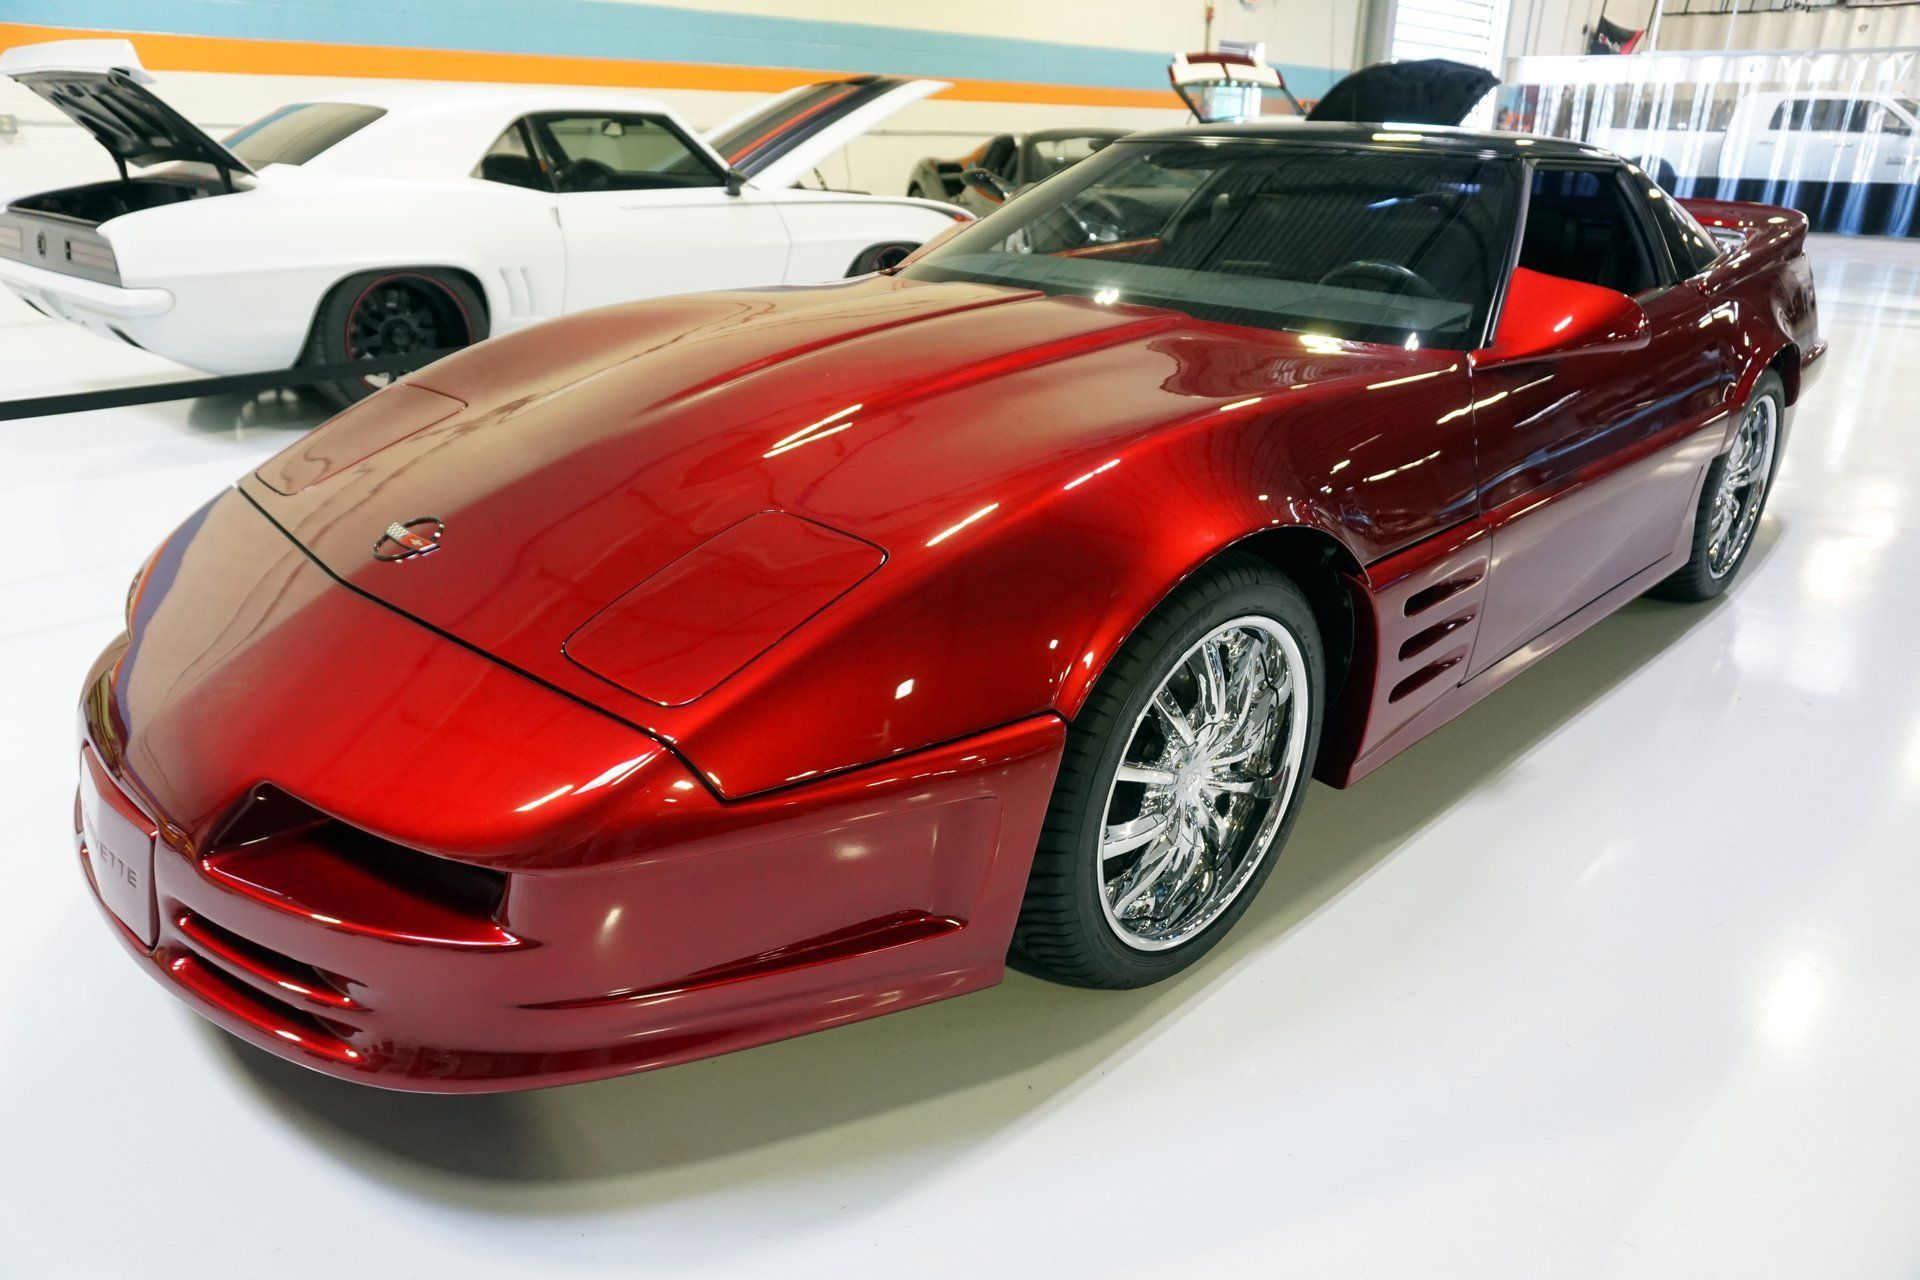 You Could Own This Highly Custom C4 Corvette Concept Corvette Red Corvette Chevrolet Corvette C4